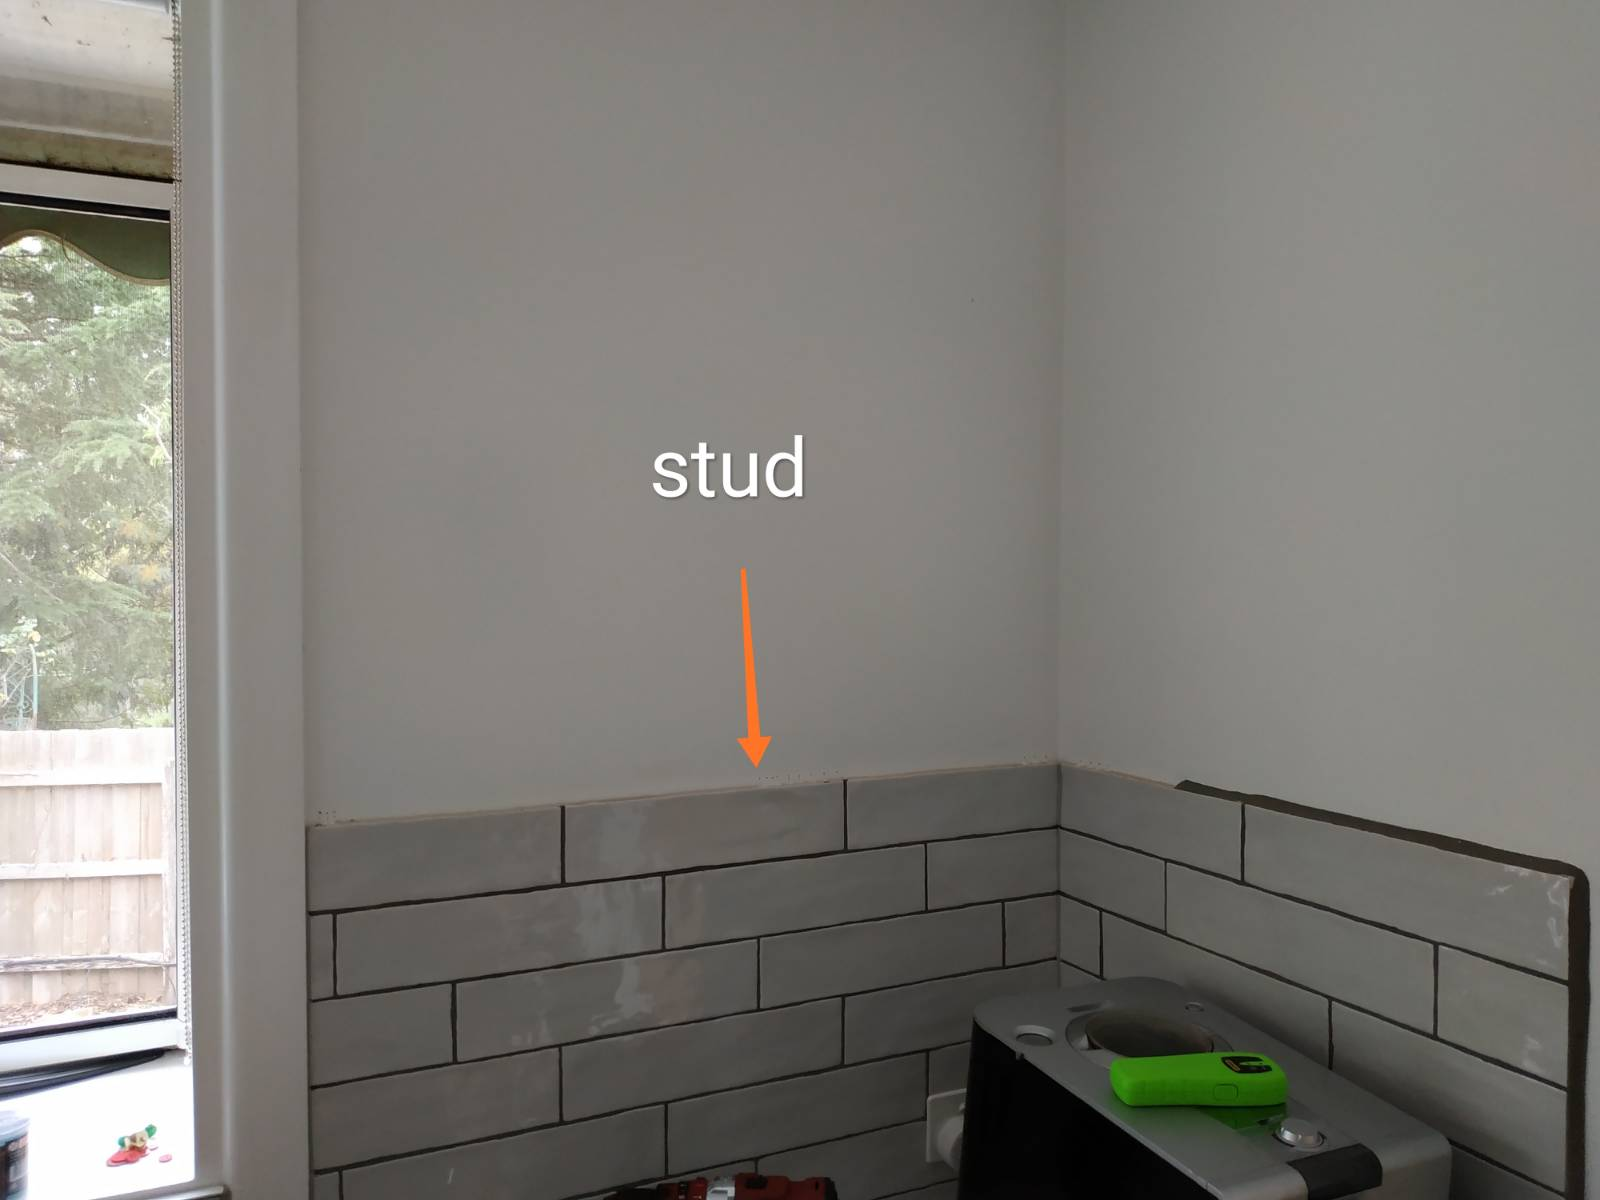 Installing a timber floating shelf - single stud